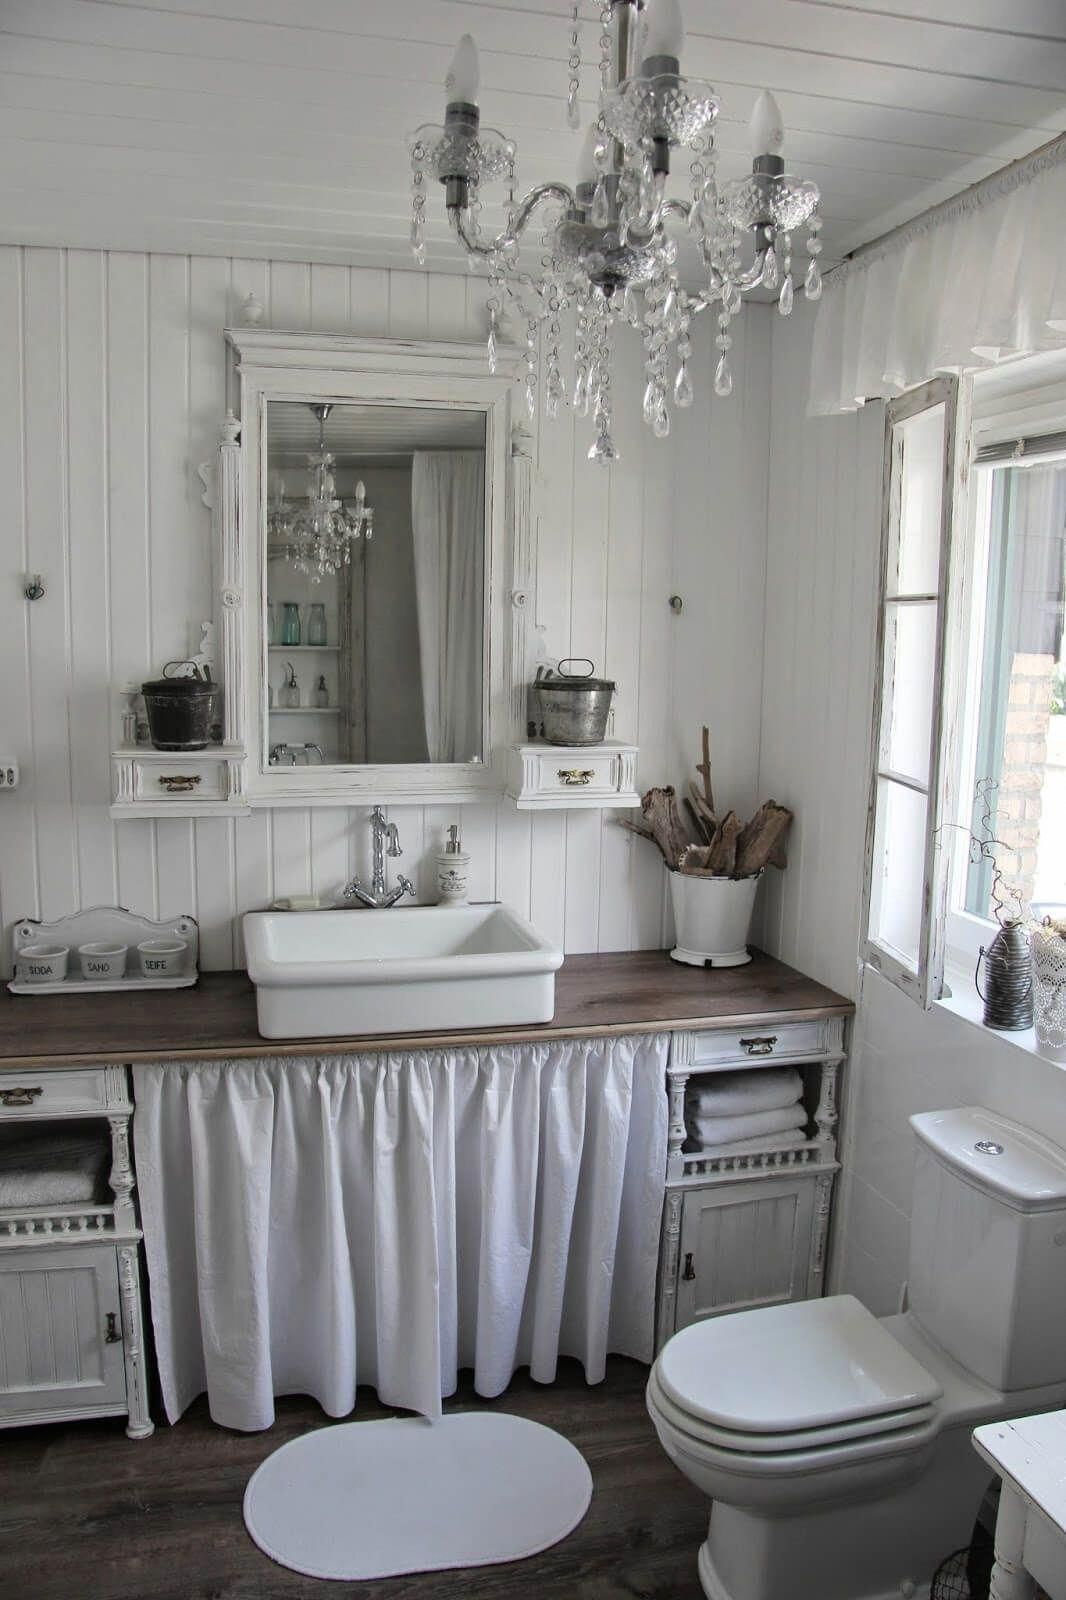 Shabby Chic Badezimmer Shabby Chic Bathroom Design With Ruffle Details Bad Salle De